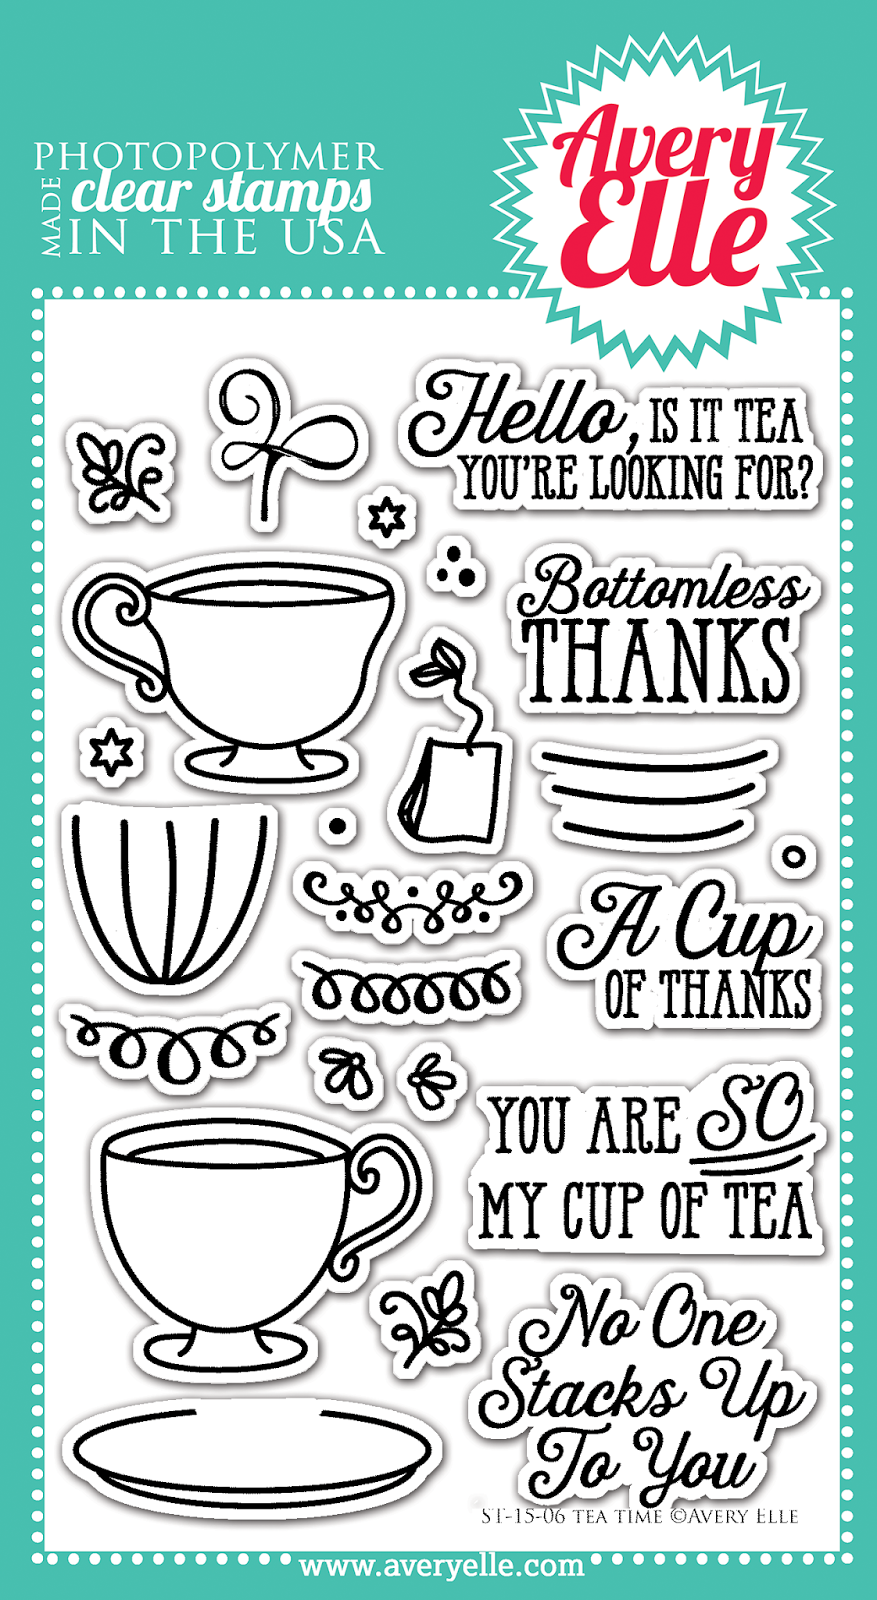 Avery Elle: Tea Time Clear Stamp Set